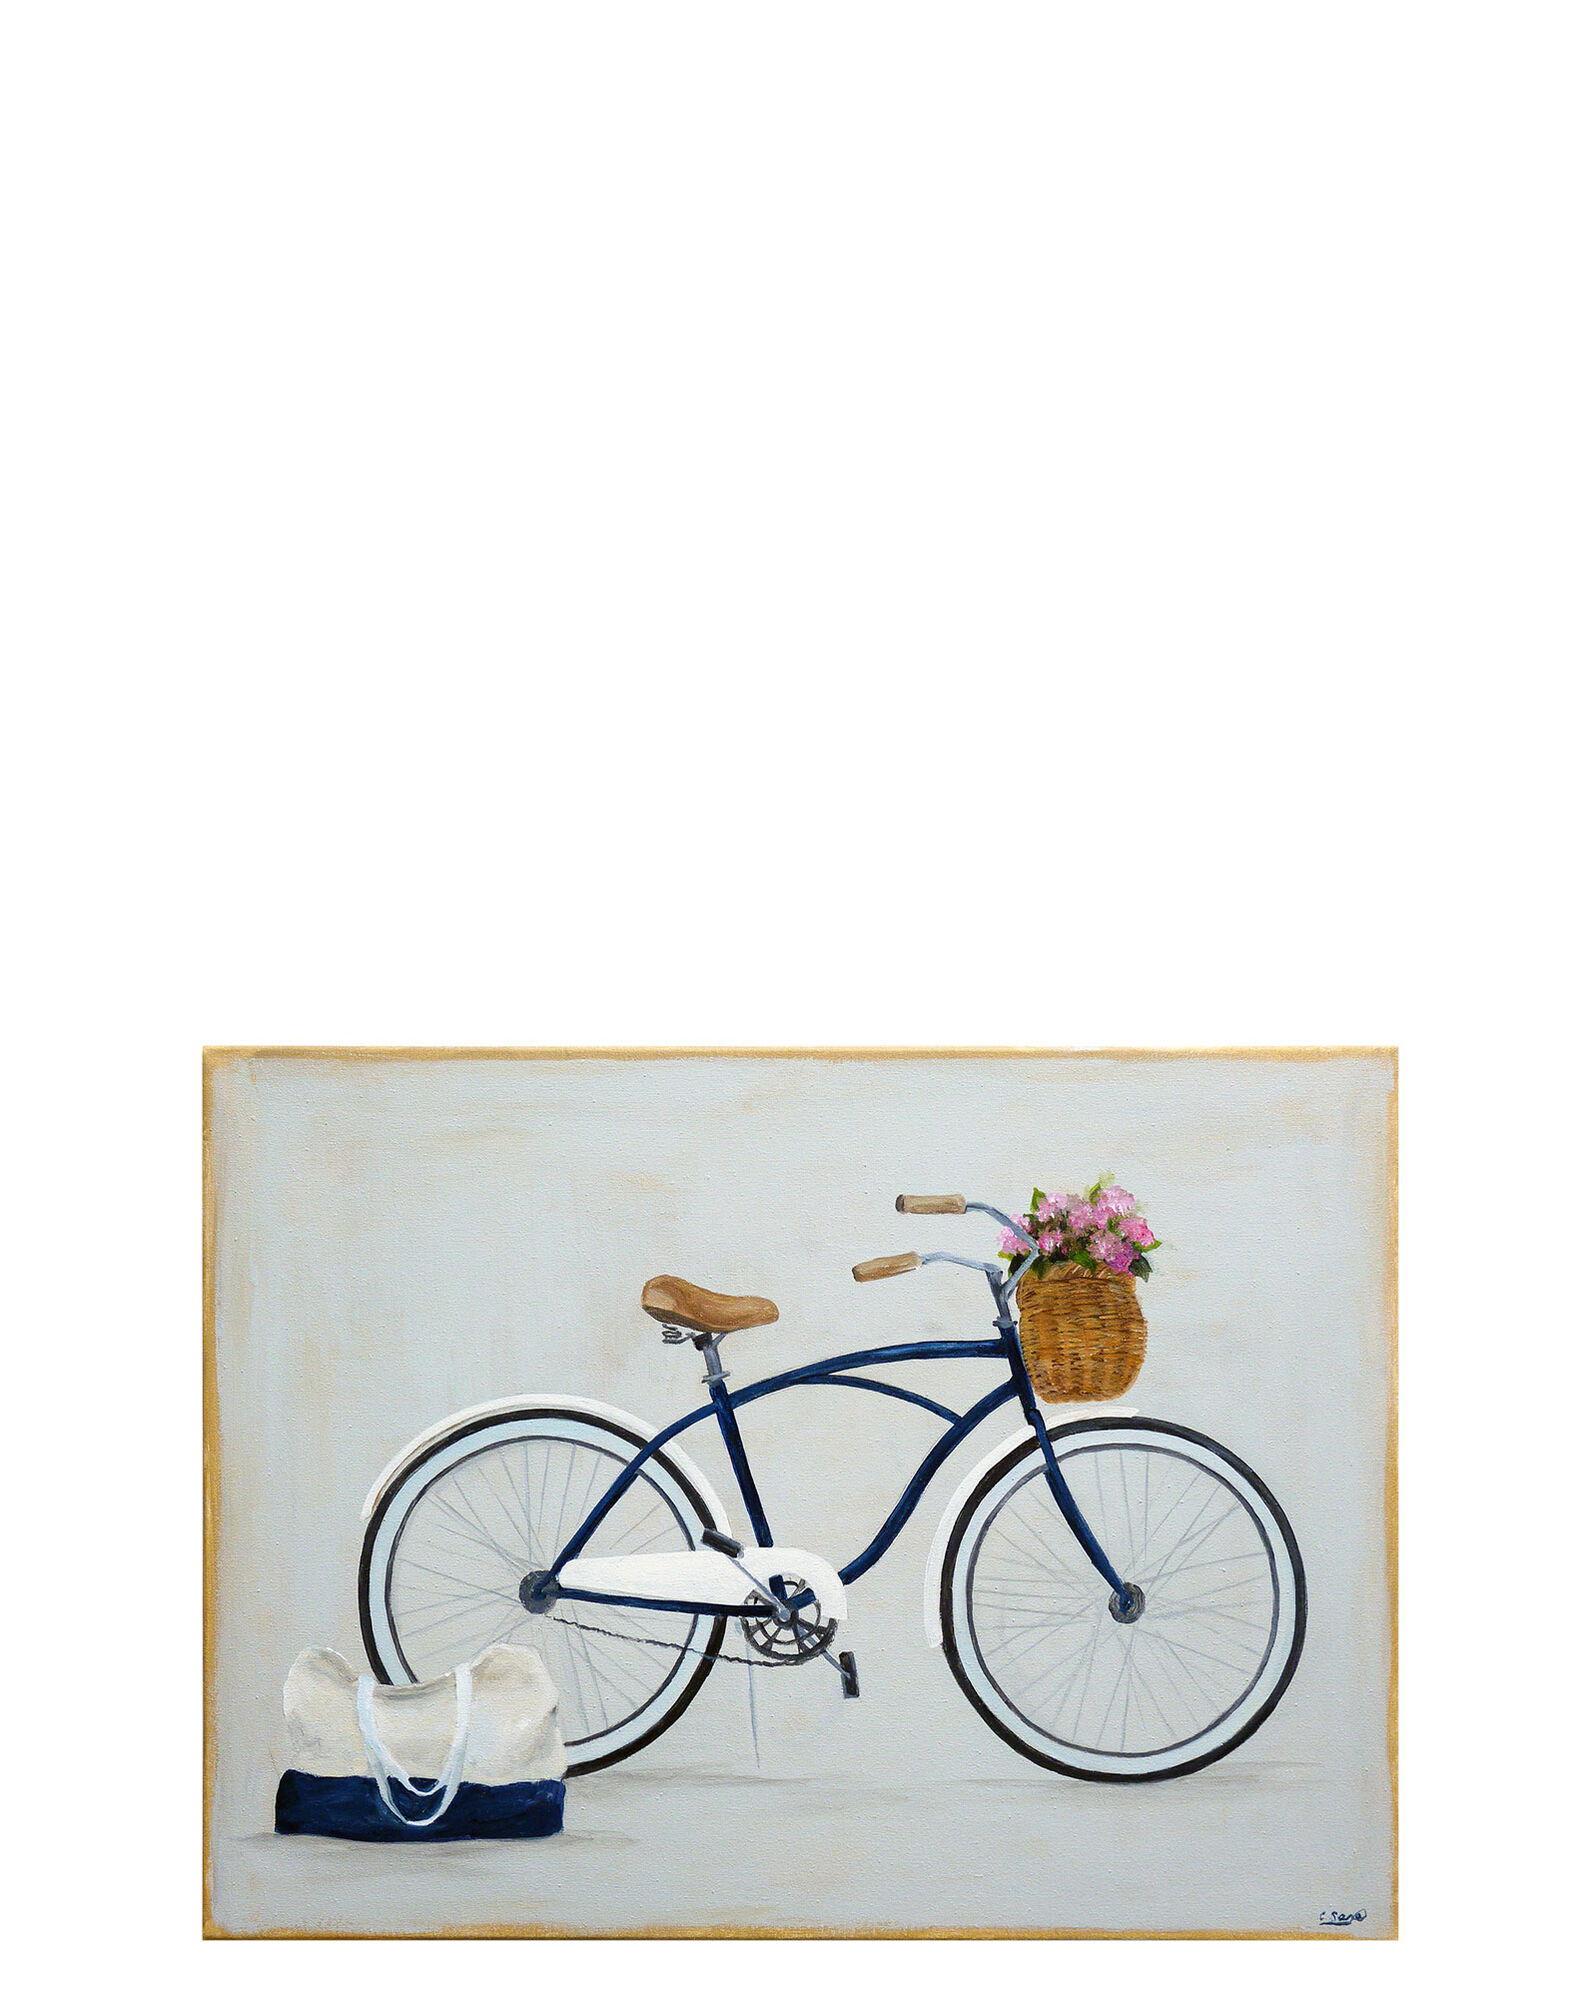 """""""Bike with Flowers and Tote"""" by Carol Saxe,"""